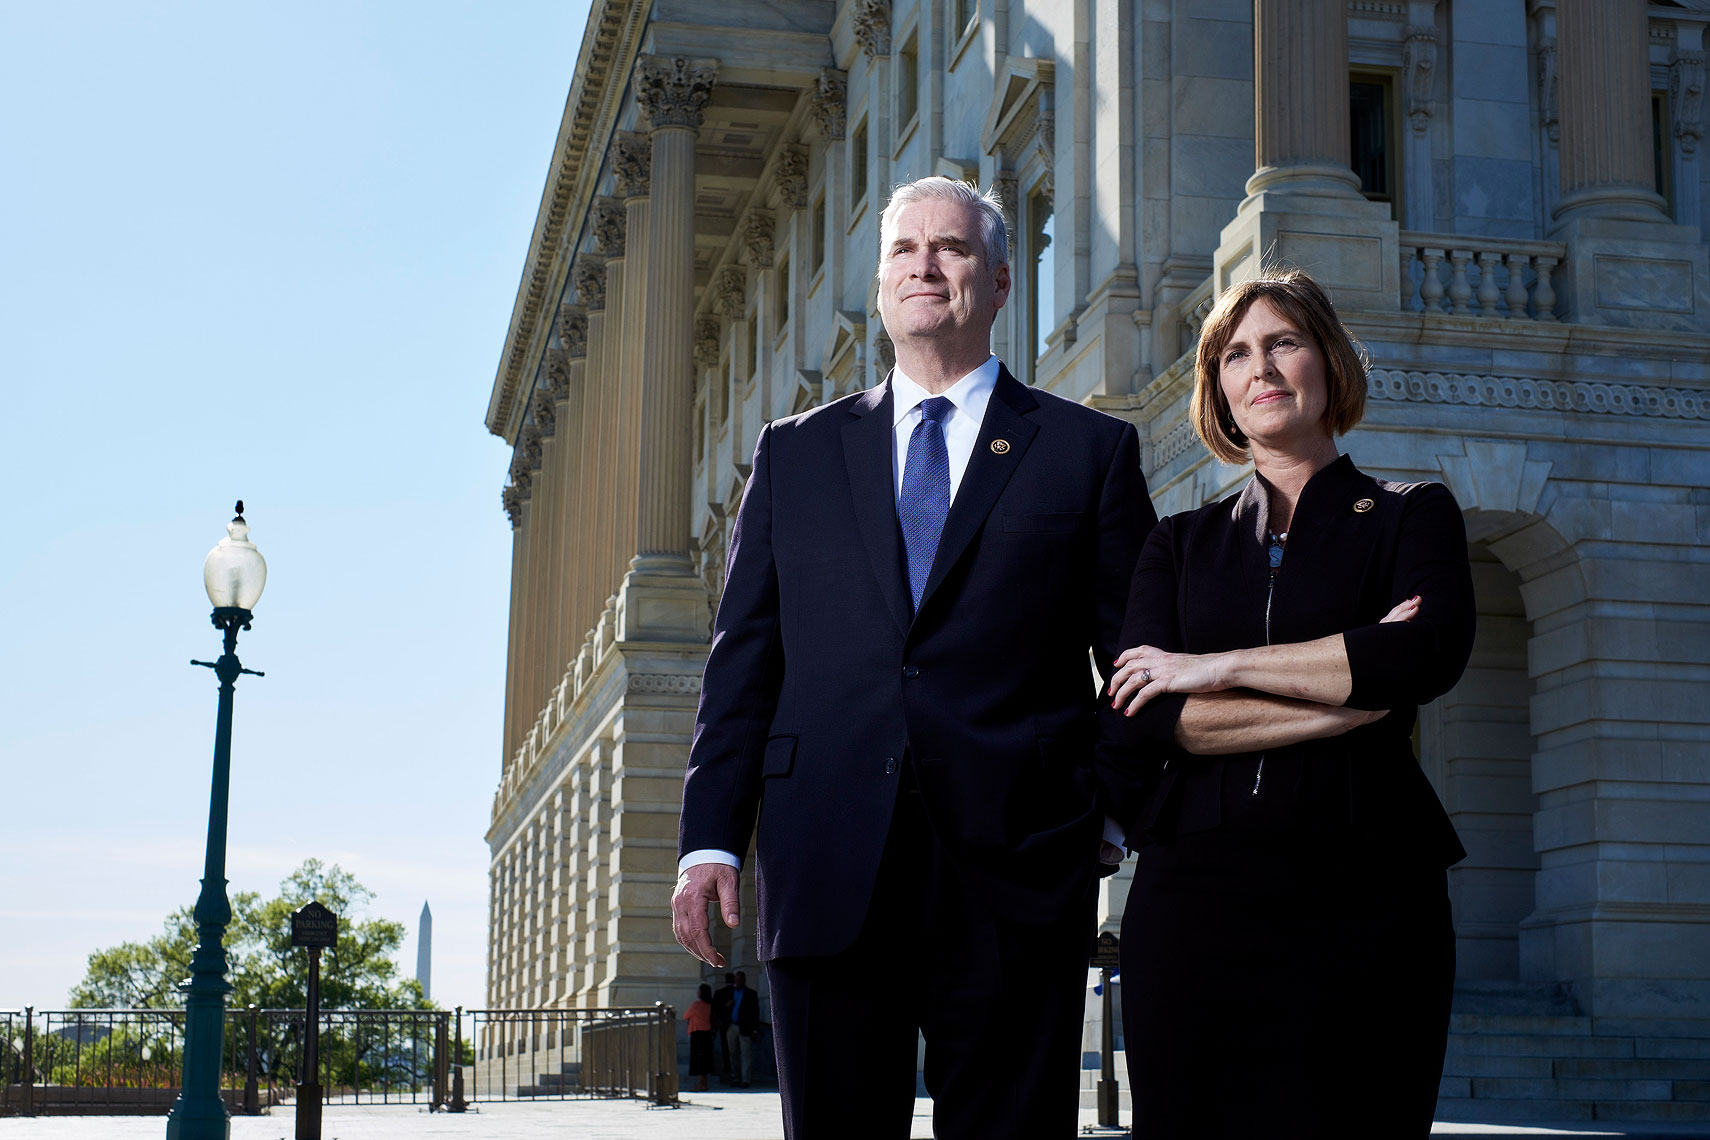 Congresswoman Castor and Congressman Emmer